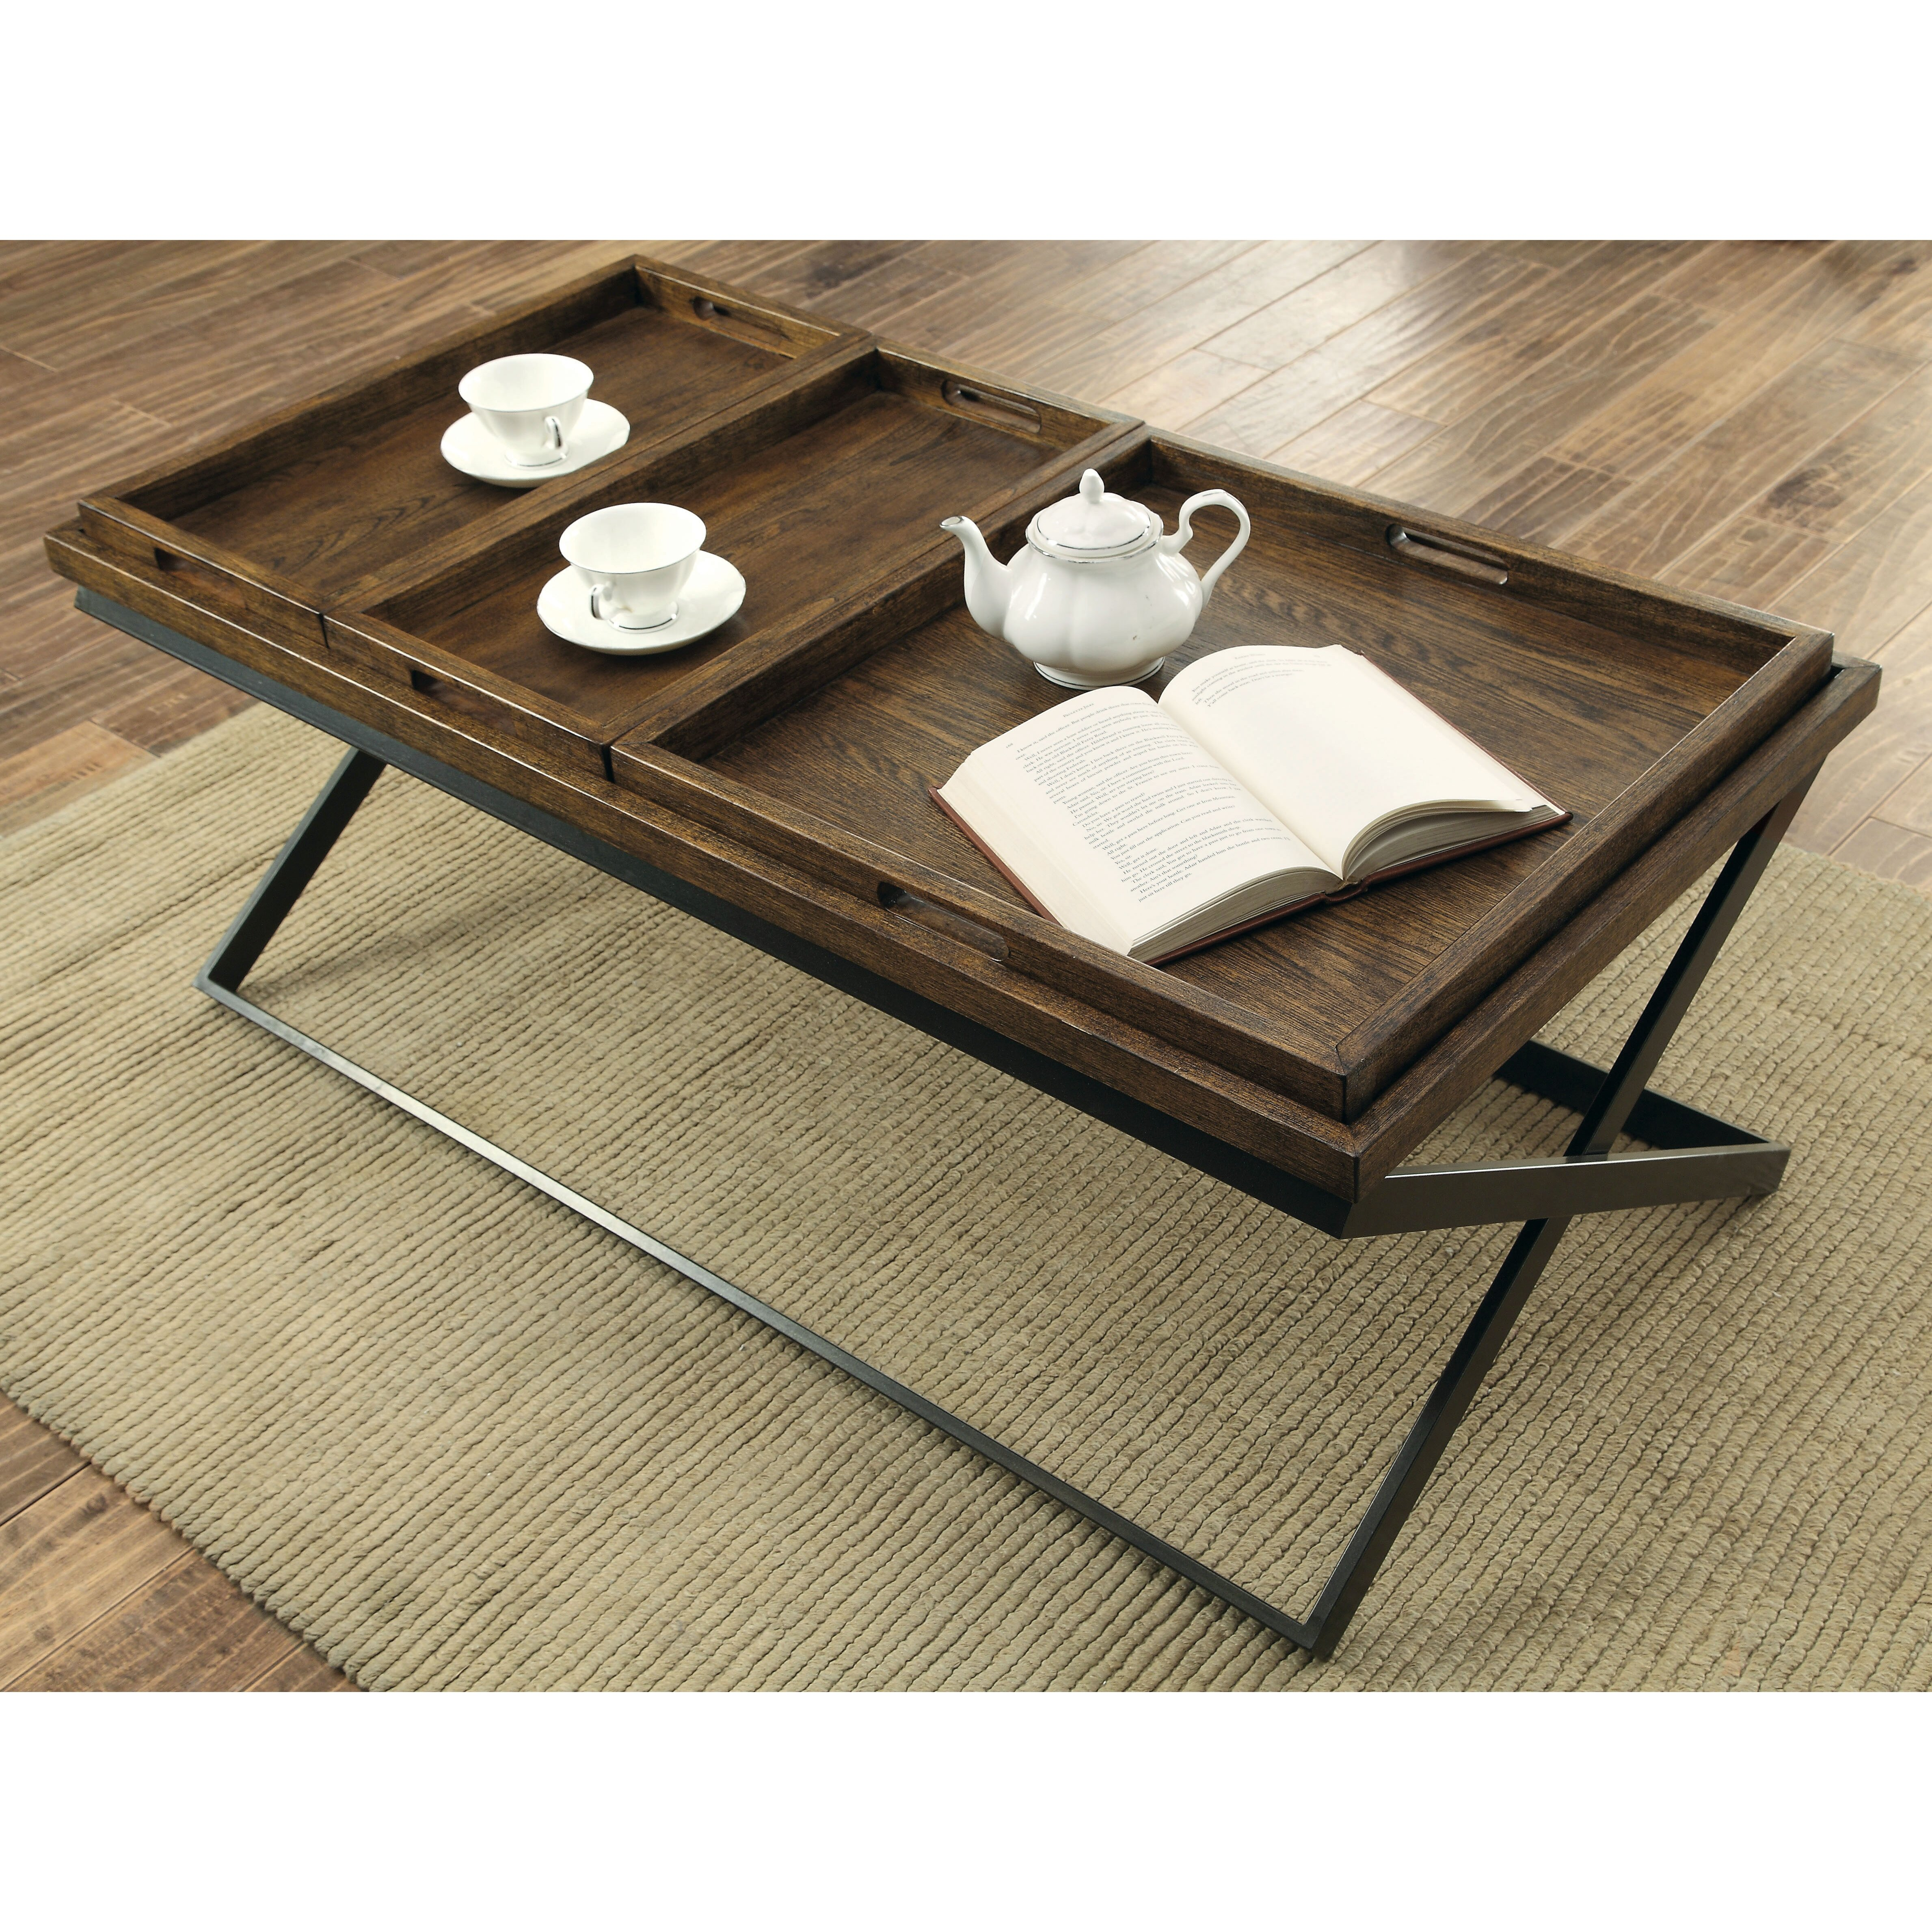 Tray Like Coffee Table: Laurel Foundry Modern Farmhouse Evansville Coffee Table